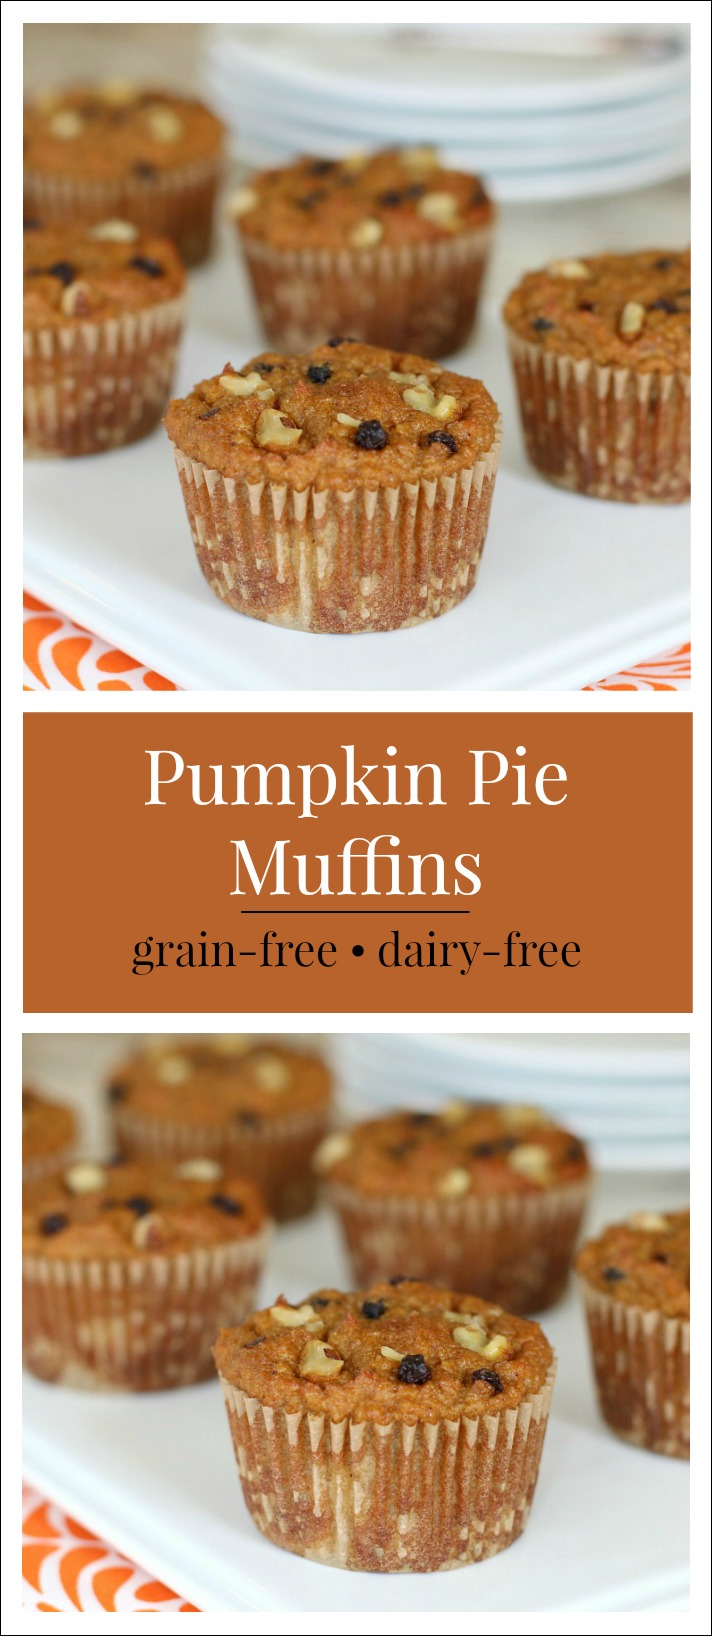 Enjoy some delicious and healthy Fall baking adventures like these scrumptious grain-free, dairy-free Pumpkin Pie Muffins.